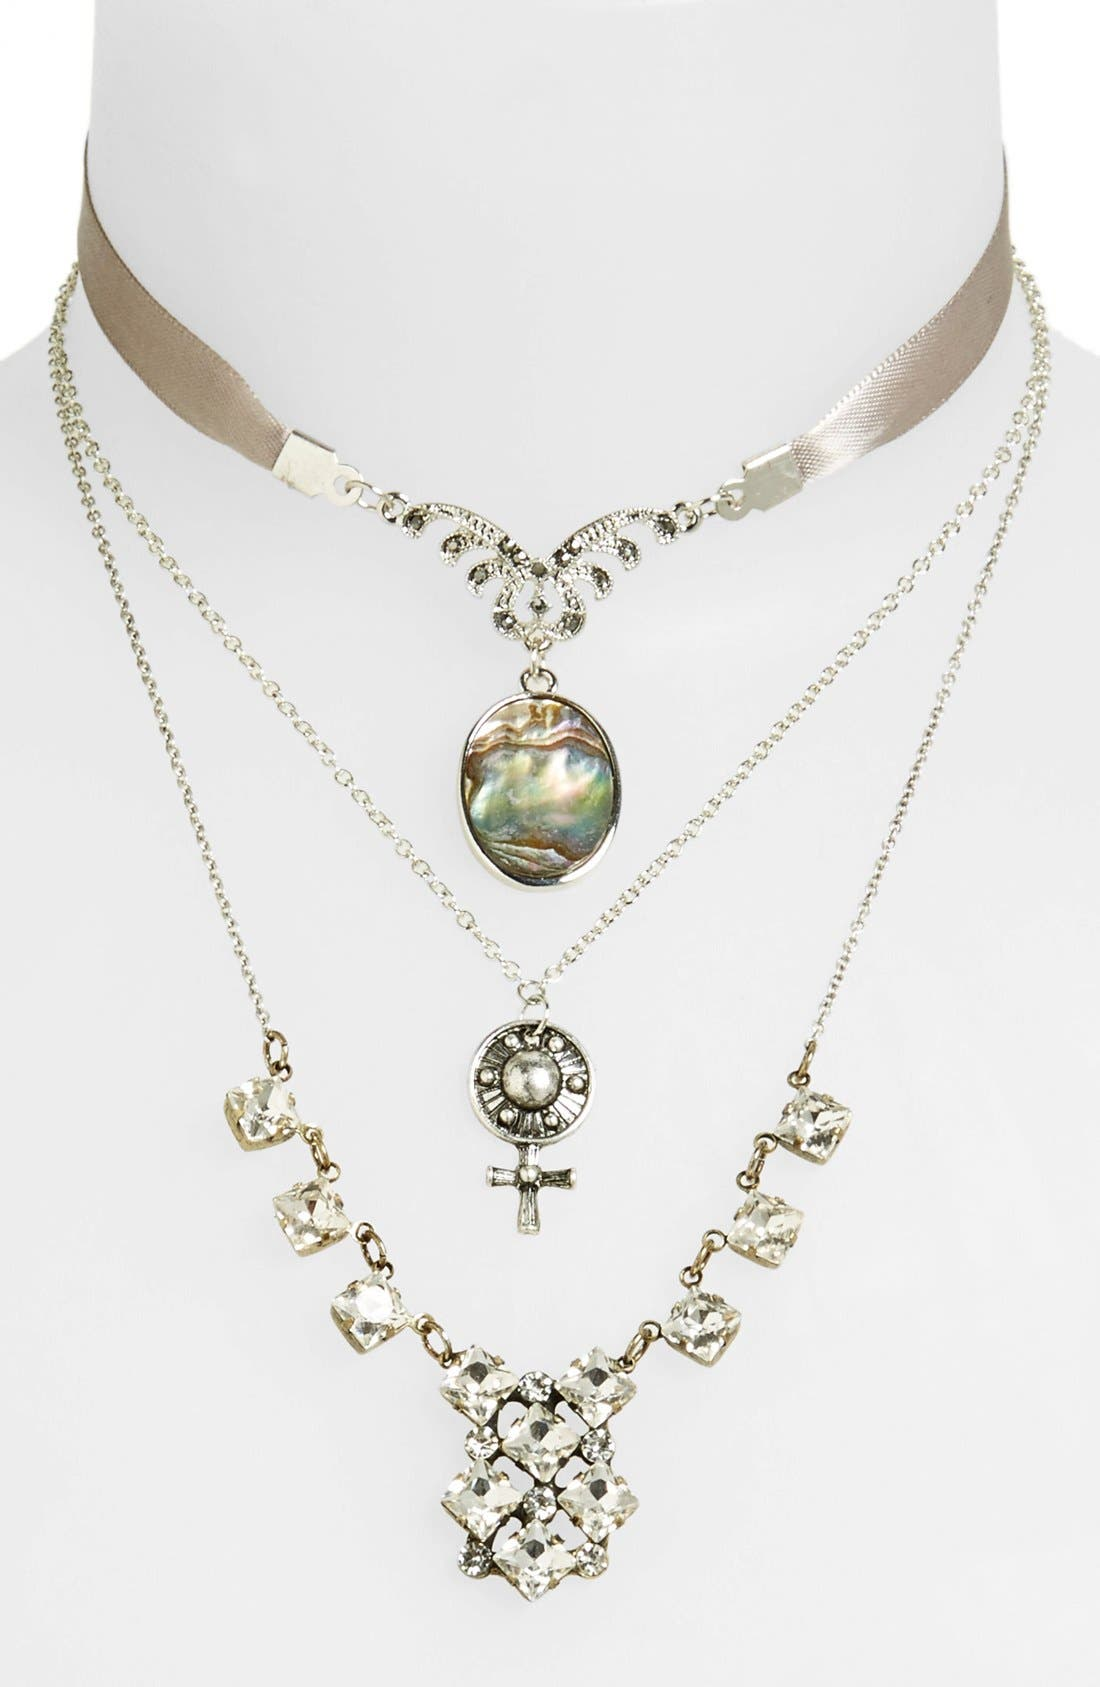 Main Image - Topshop Abalone Charm Necklaces (3-Pack)